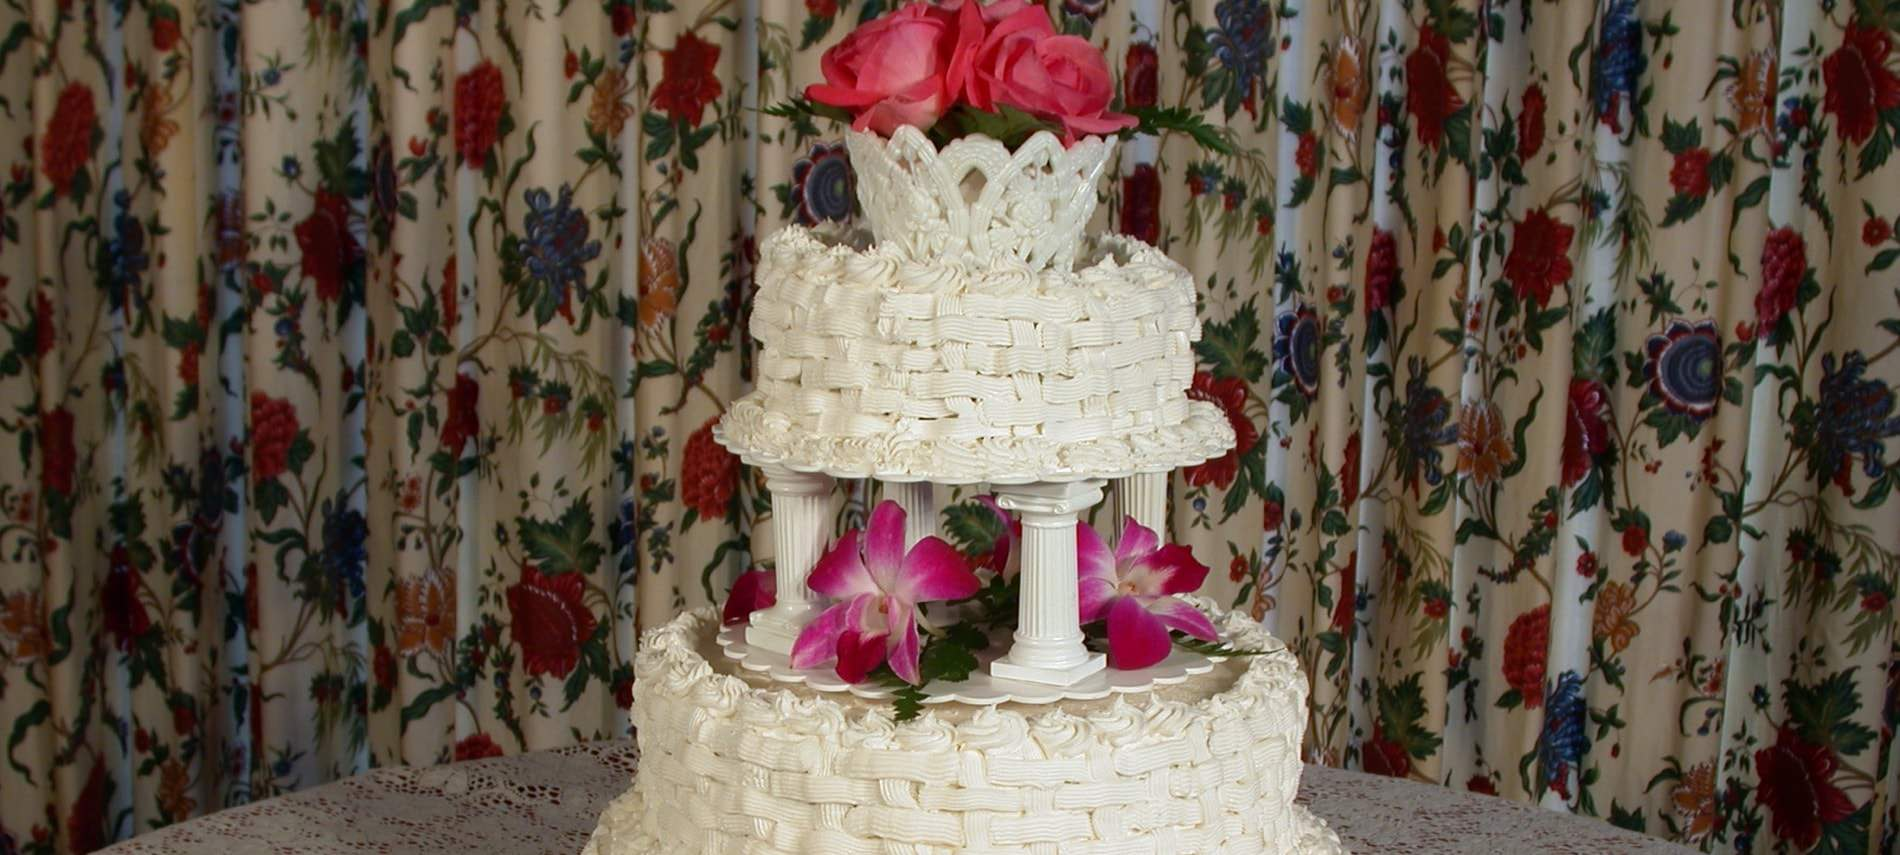 Two tiered ivory wedding cake with basket weave frosting topped with pink and rose flowers